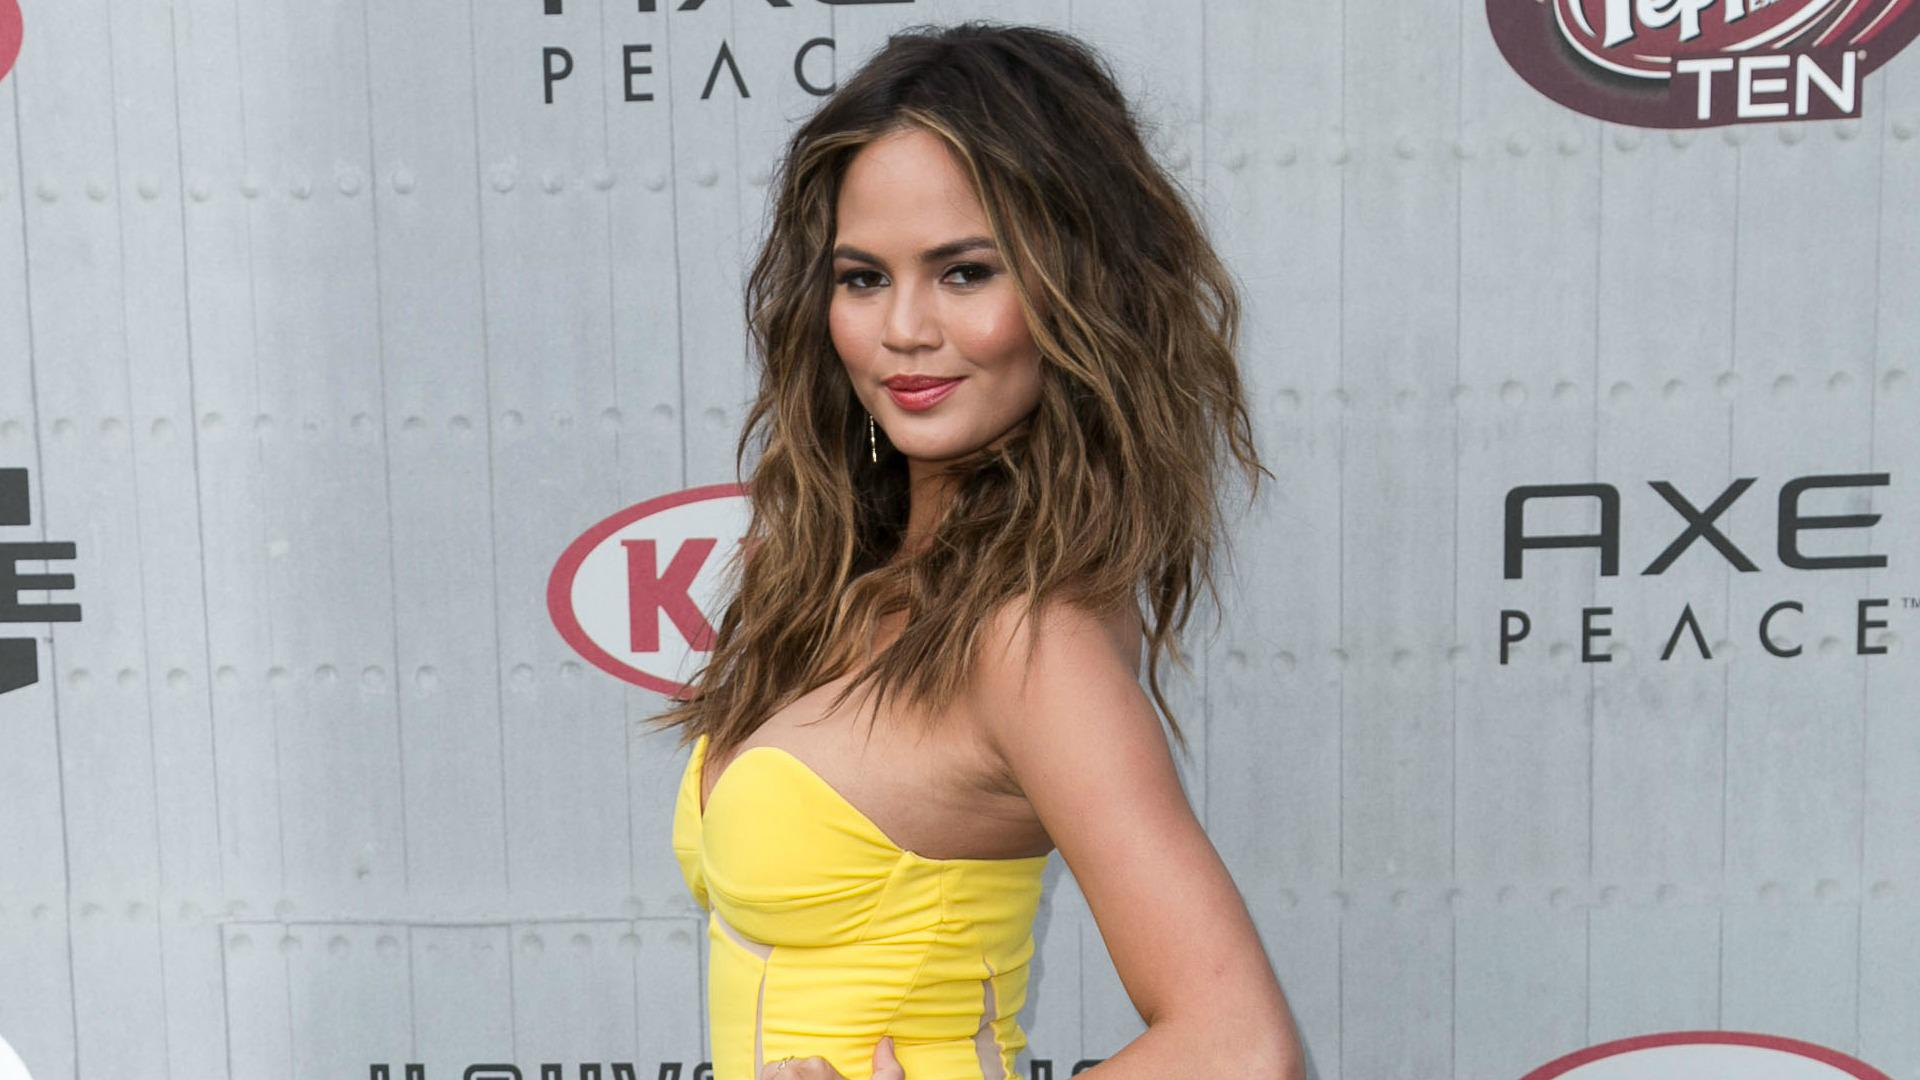 Forever 21 fired Chrissy Teigen for being too fat